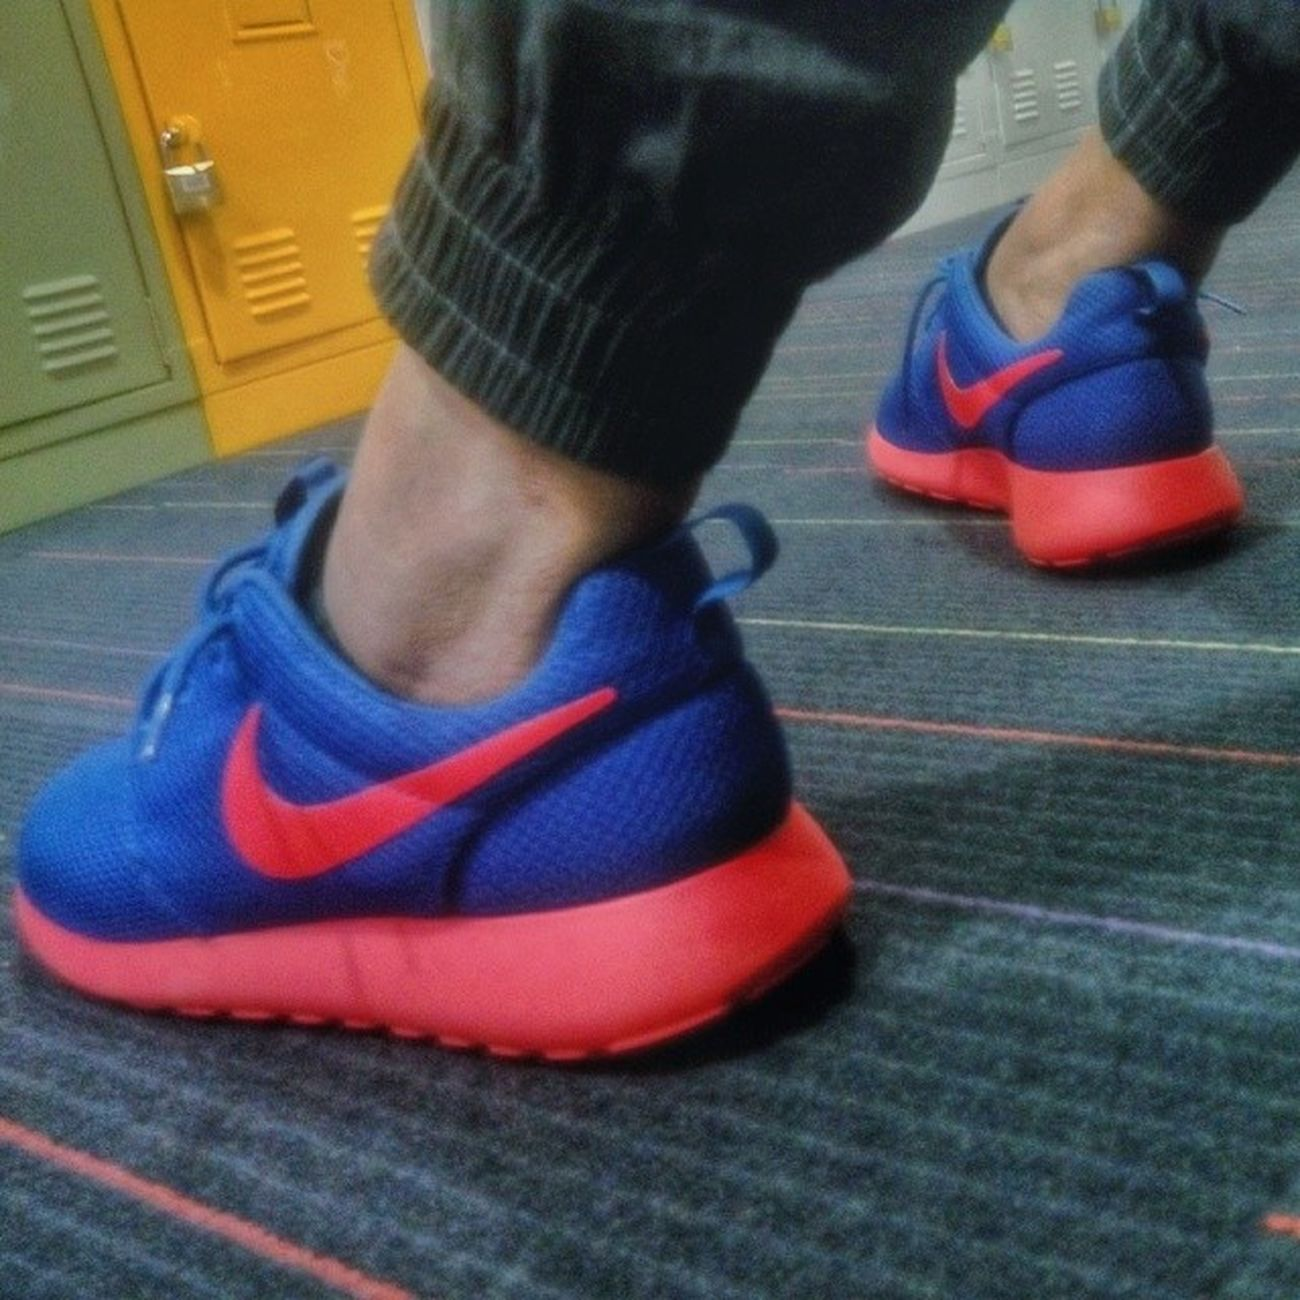 "New cop! Roshe Run ""Knicks"" Rosherun Rosherunknicks Swoosh Nike sneakercommunity shoegasm shoeporn kotd kicksoftheday instashoes igsneakercommunity"